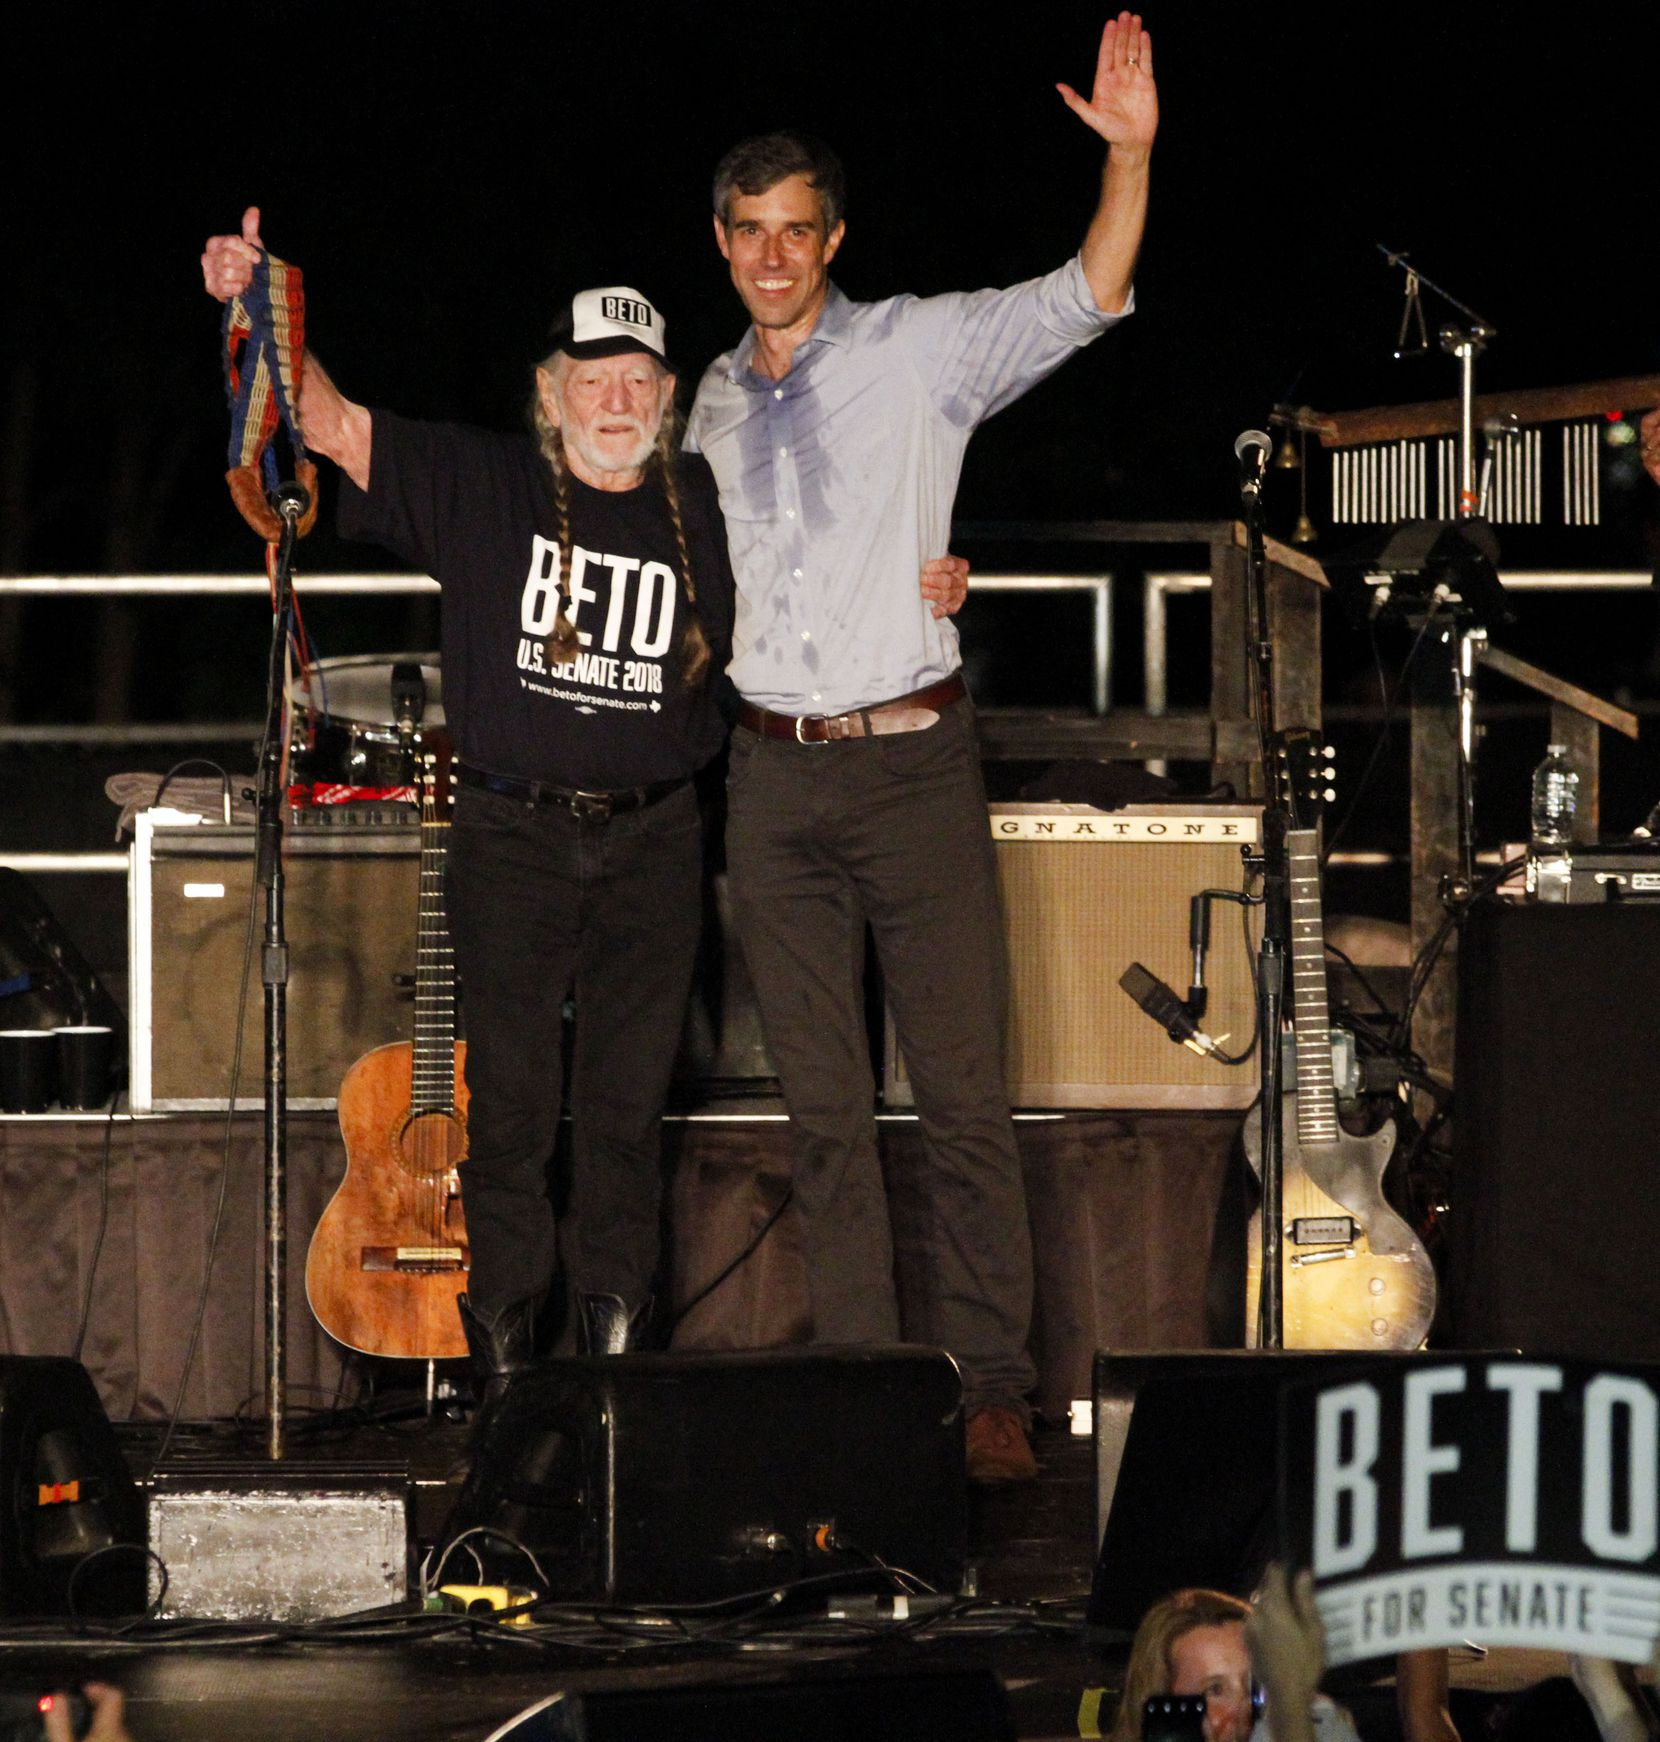 Campaigning for Senate against incumbent Ted Cruz in 2018,  Beto O'Rourke shared a stage with Willie Nelson.